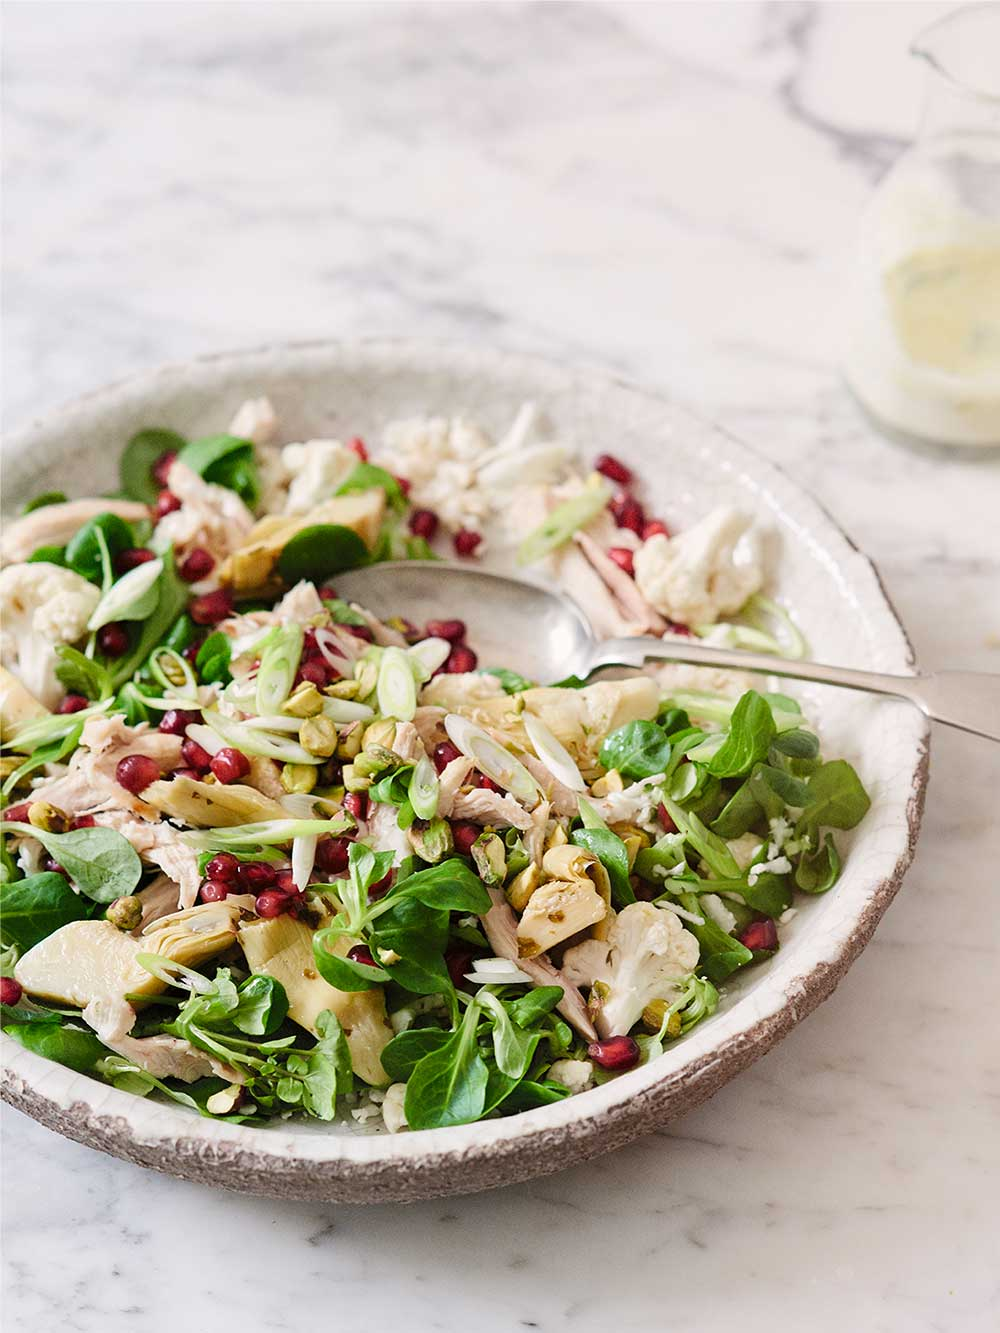 Chicken, Cauliflower & Pistachio Salad by Amelia Freer